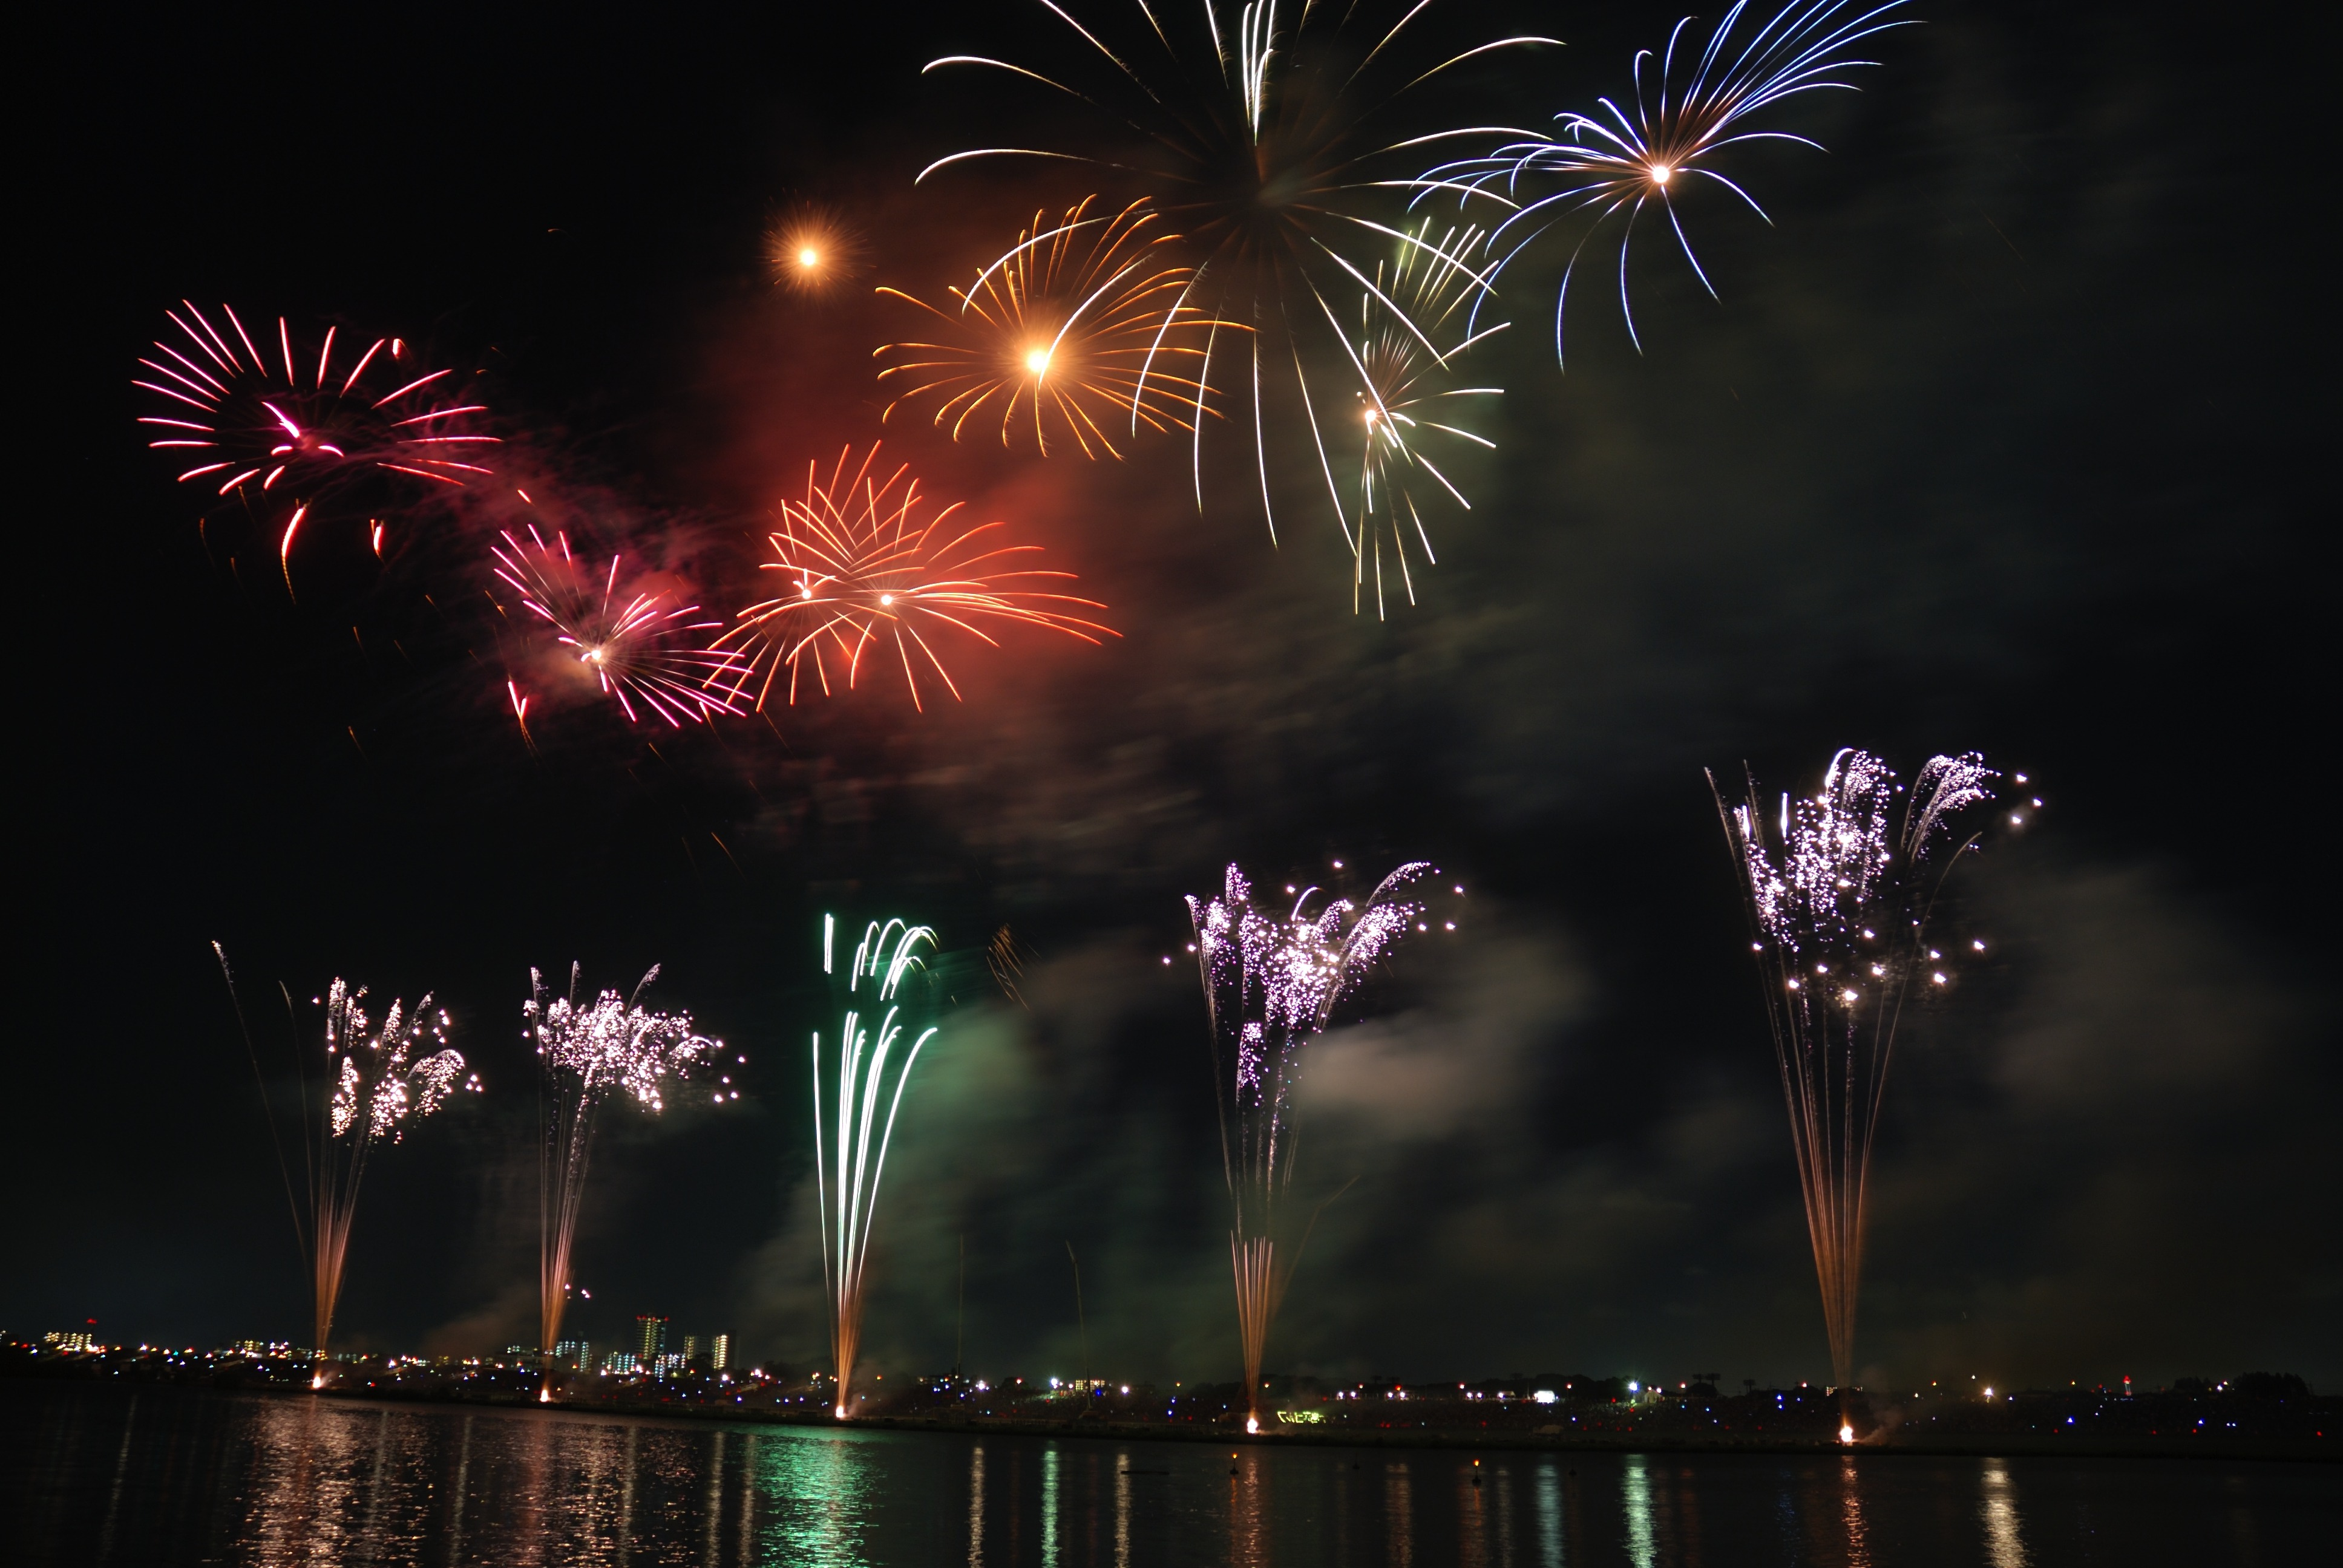 fireworks-colorful-sky-night-73814